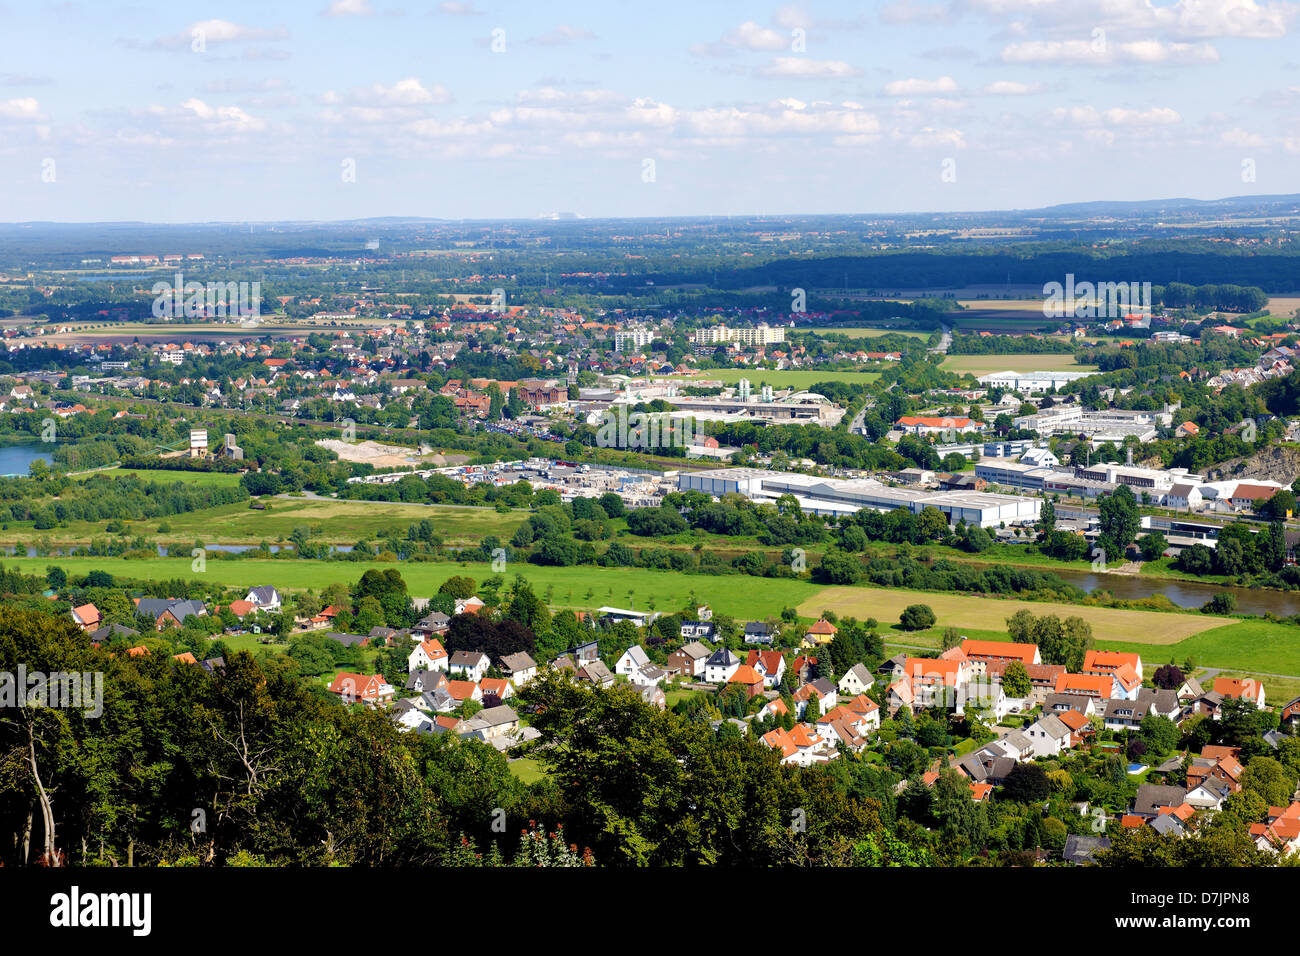 Porta Westfalica, North Rhine-Westphalia, Germany - Stock Image